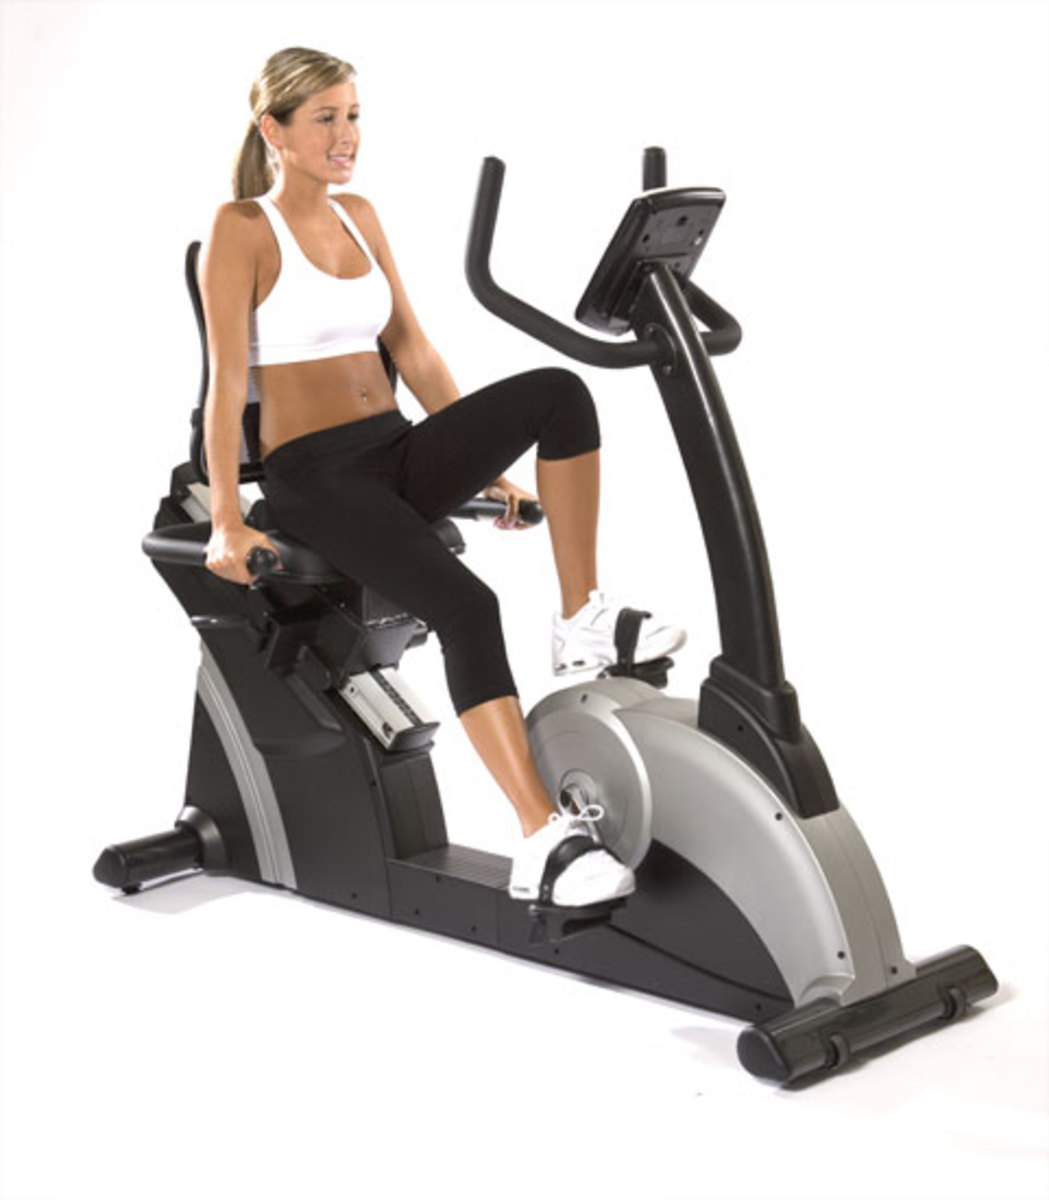 Create your own Recumbent Bike Workout